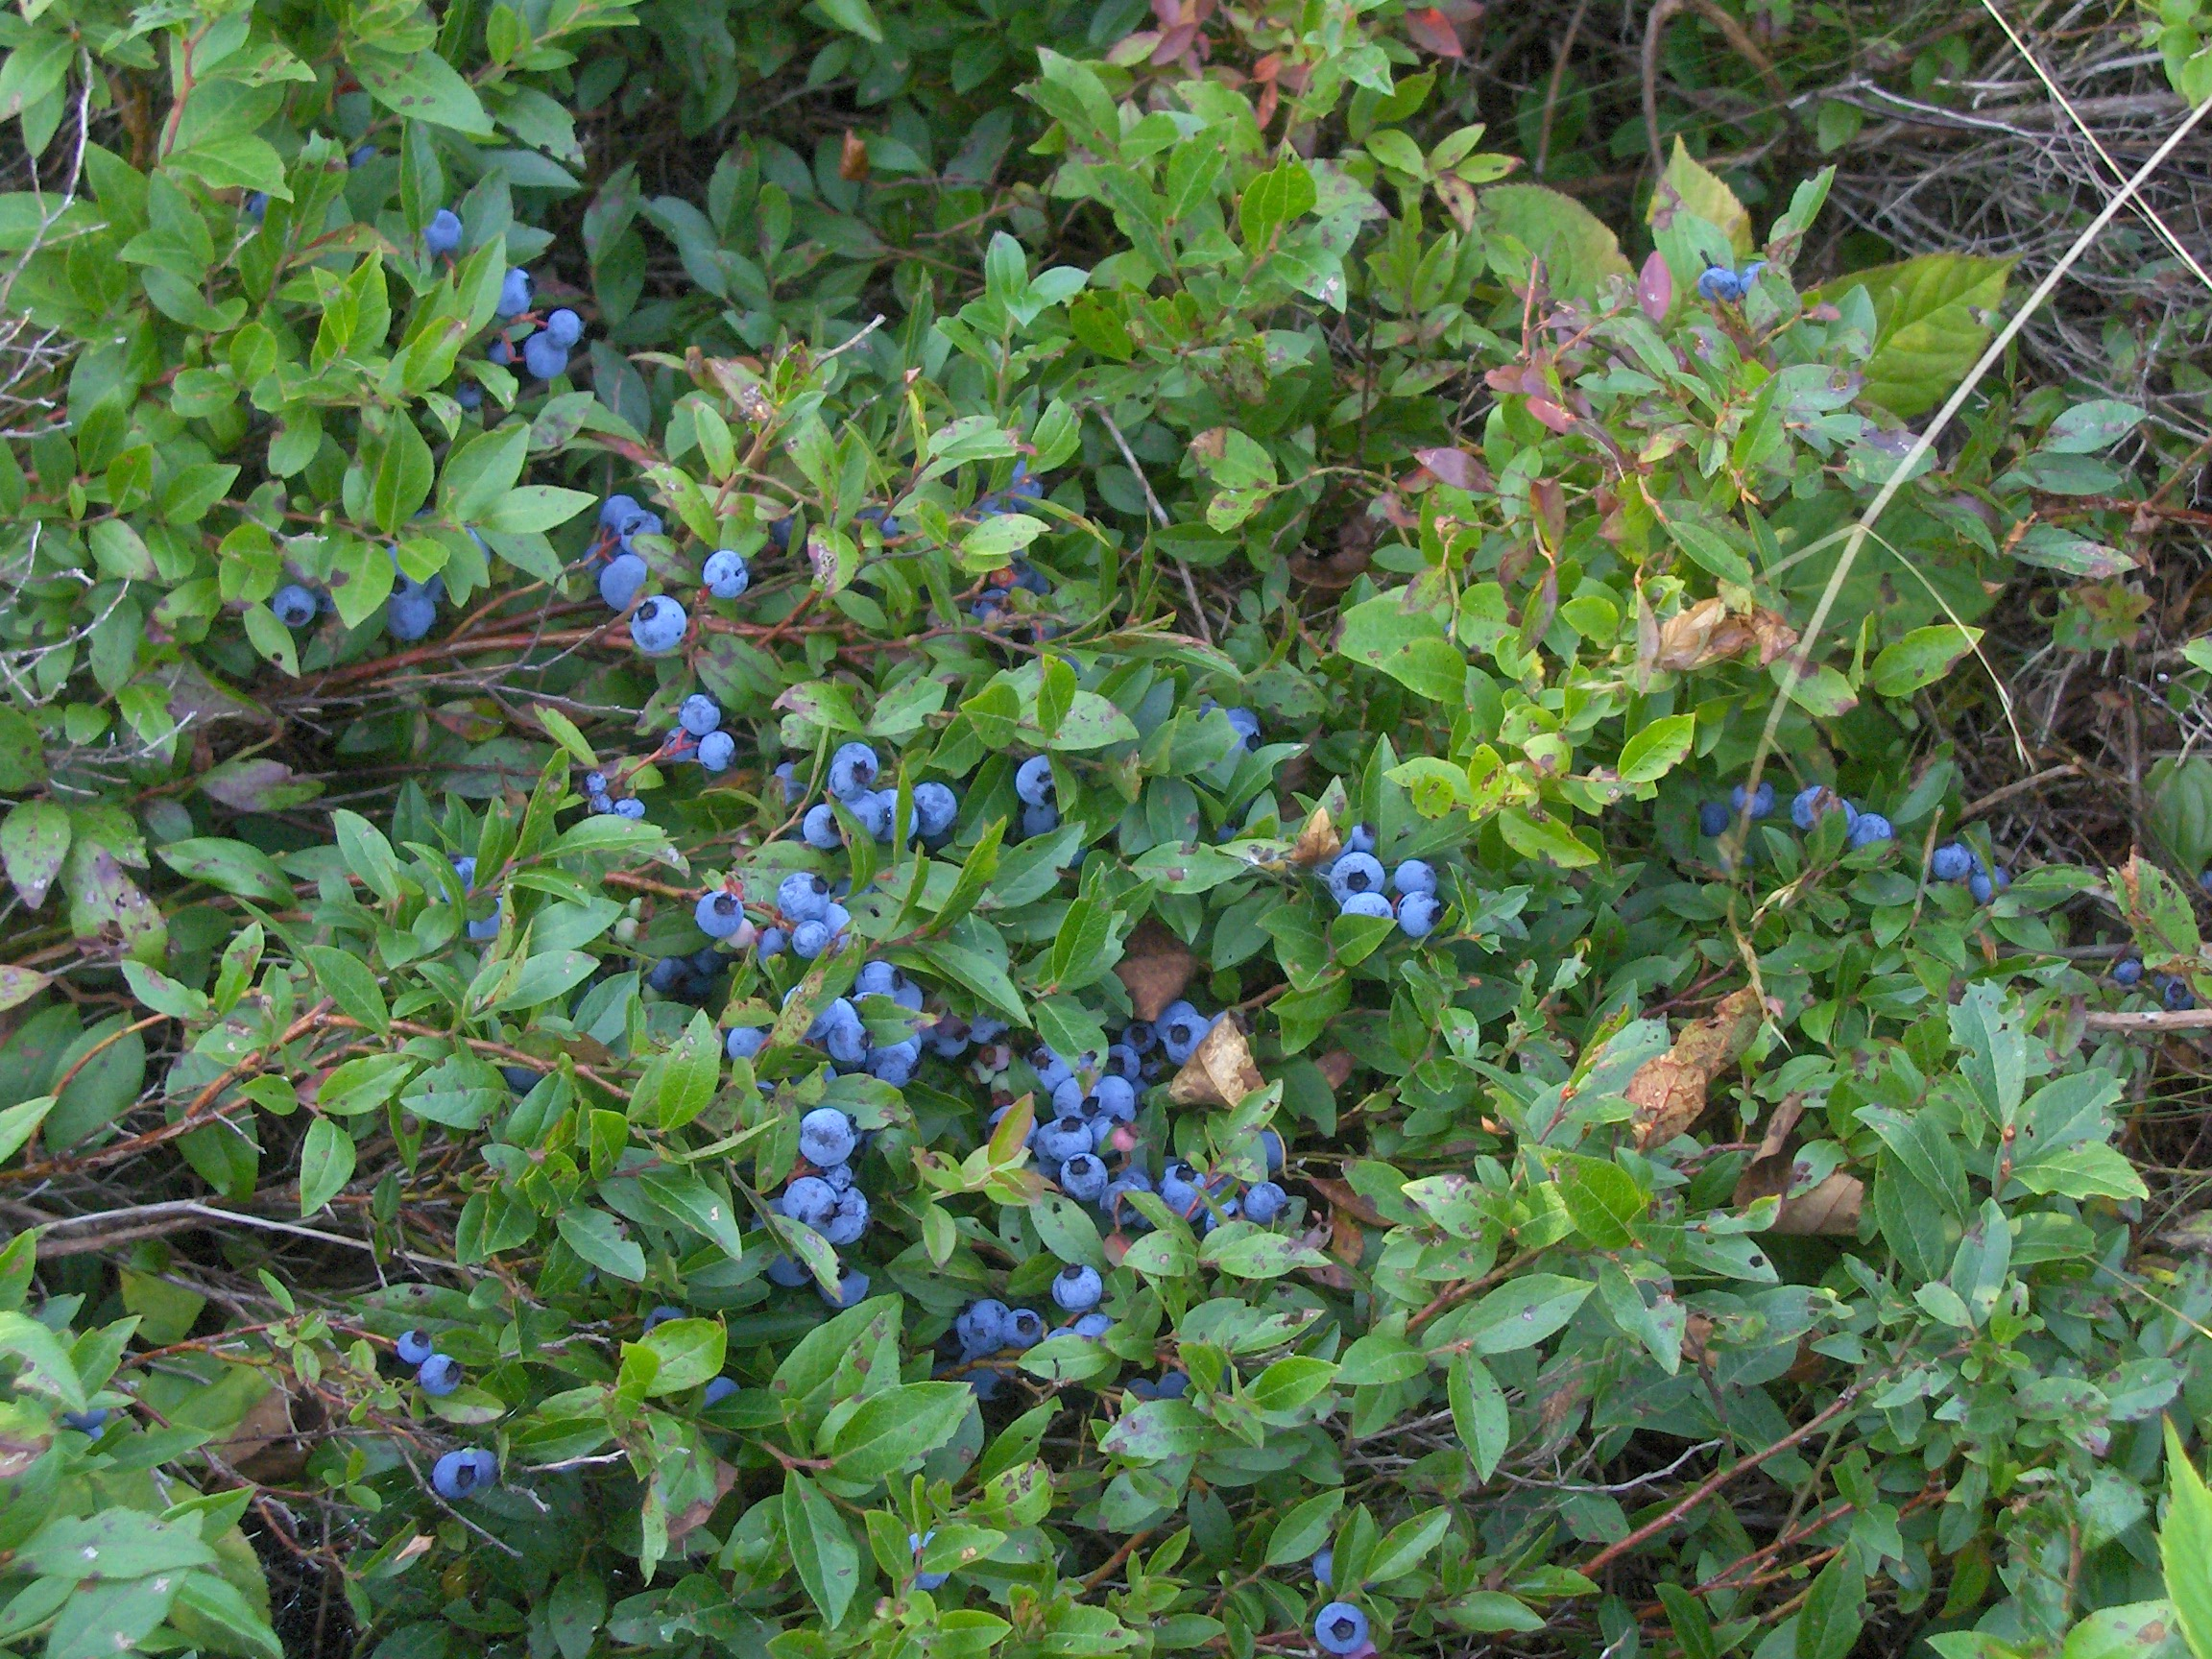 Wild Blueberries in Louisbourg, Nova Scotia. Photo Credit: Ian Harte.